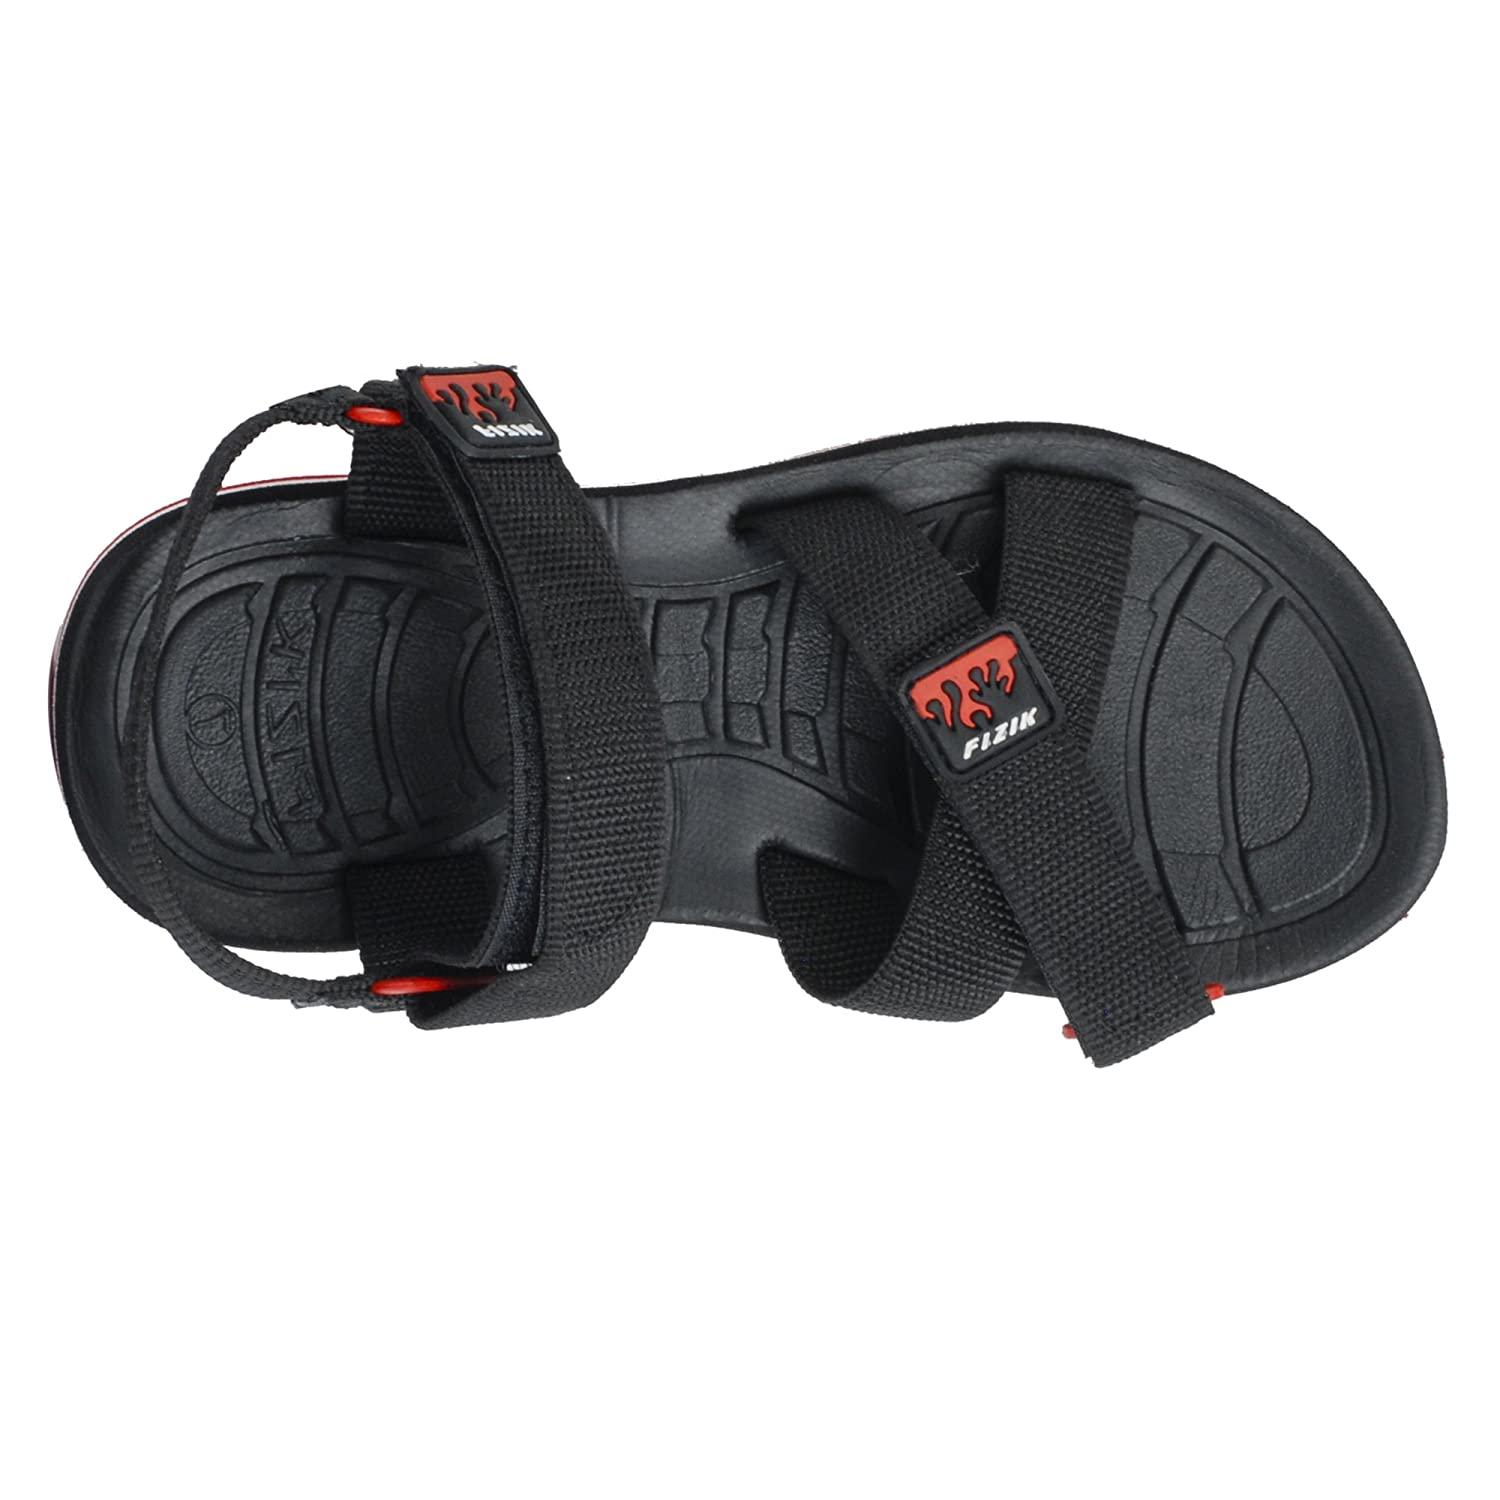 Fizik Casual Athletic Outdoor Sandals For Men Black Red Buy Introduction To 7400 Series Digital Logic Devices Fizix Online At Low Prices In India